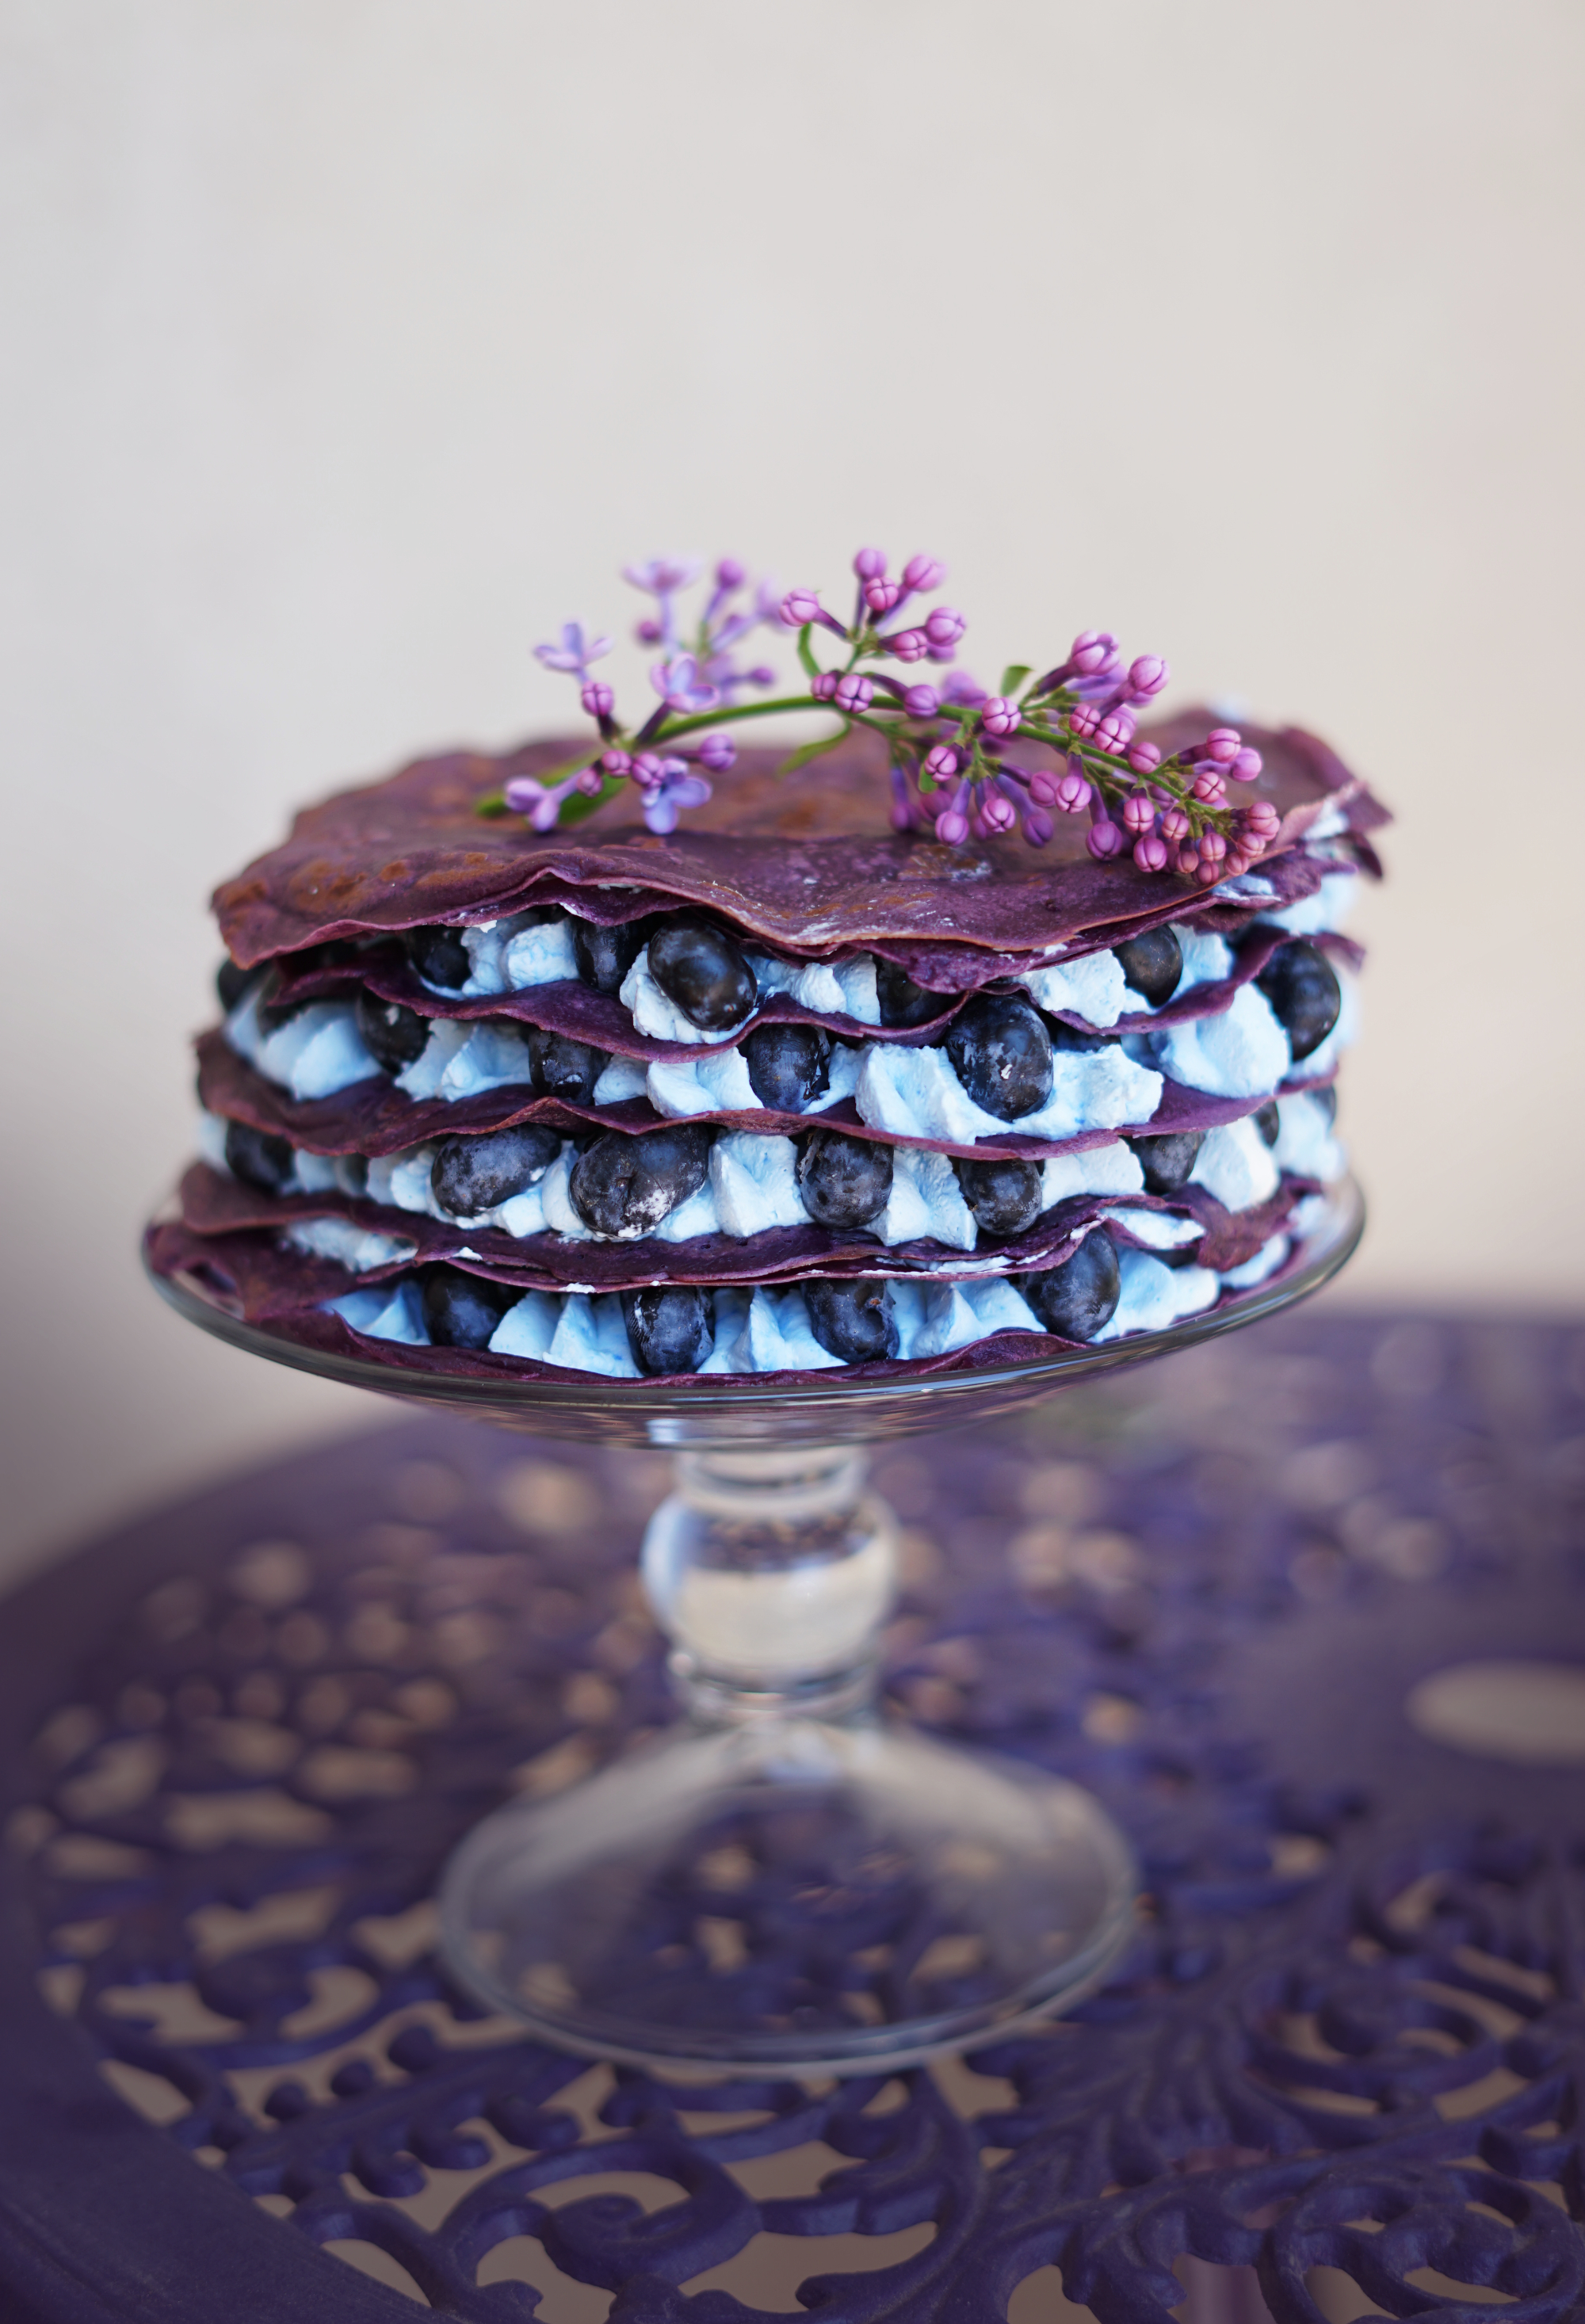 b6f8aad9c919 Blueberry Lilac Crepe Cake: A Celebration of Ethereality — The ...